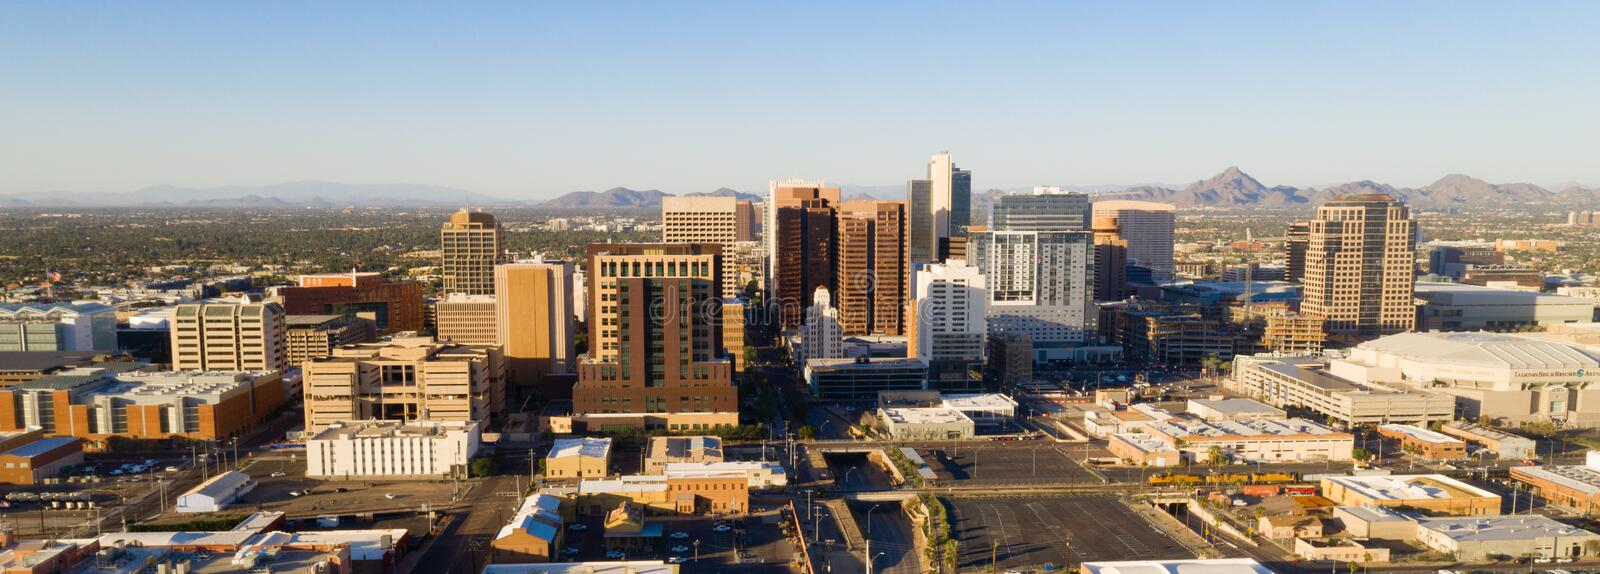 Aerial View Phoenix State Capital City of Arizona Downtown City Skyline. Late afternoon sun lights the buildings in the downtown urban core of Phoenix Arizona stock images